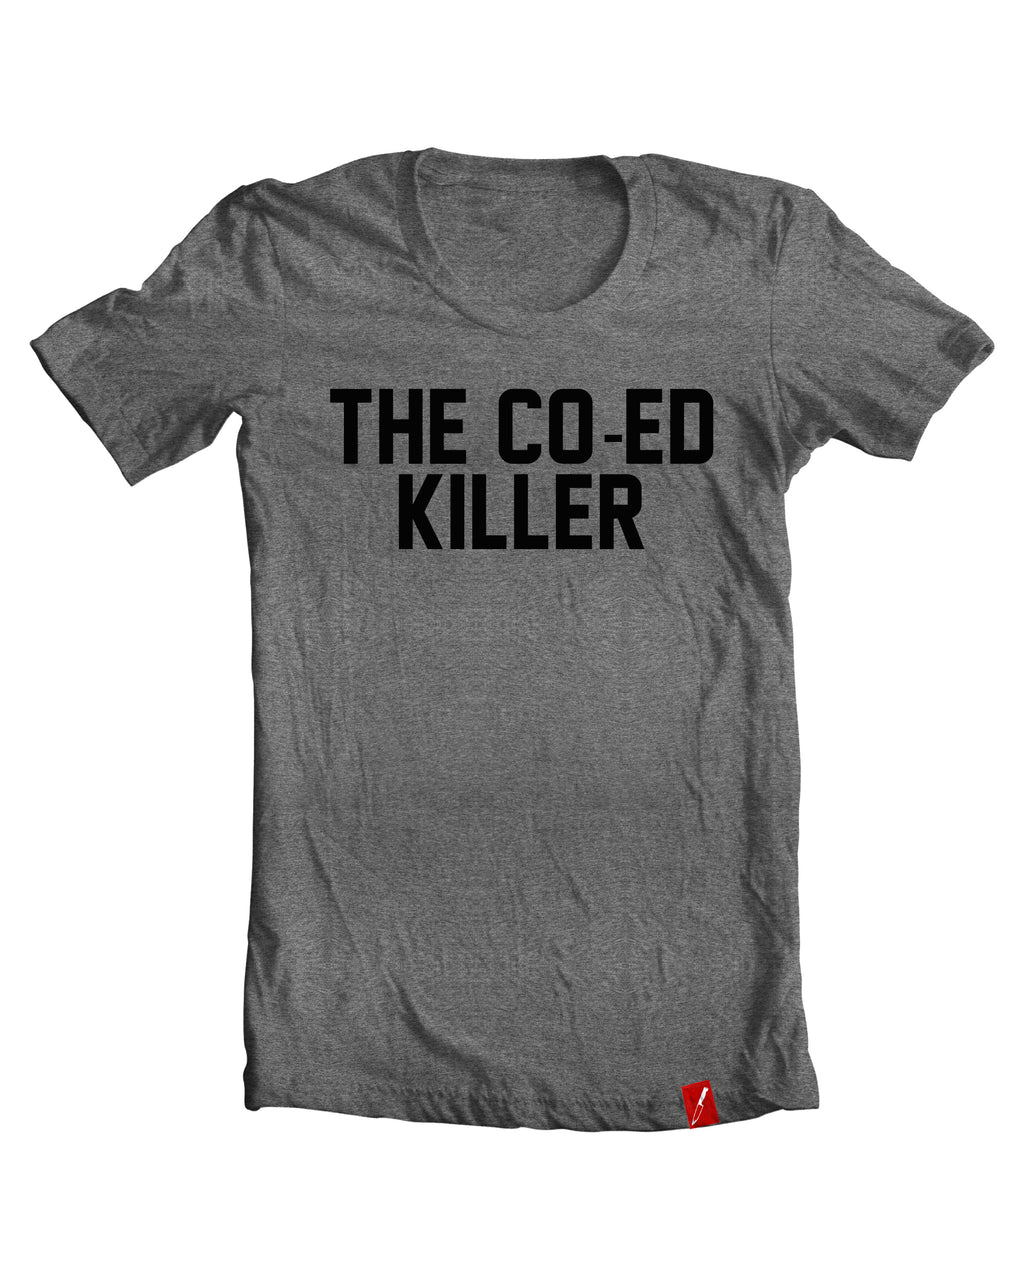 THE CO-ED KILLER